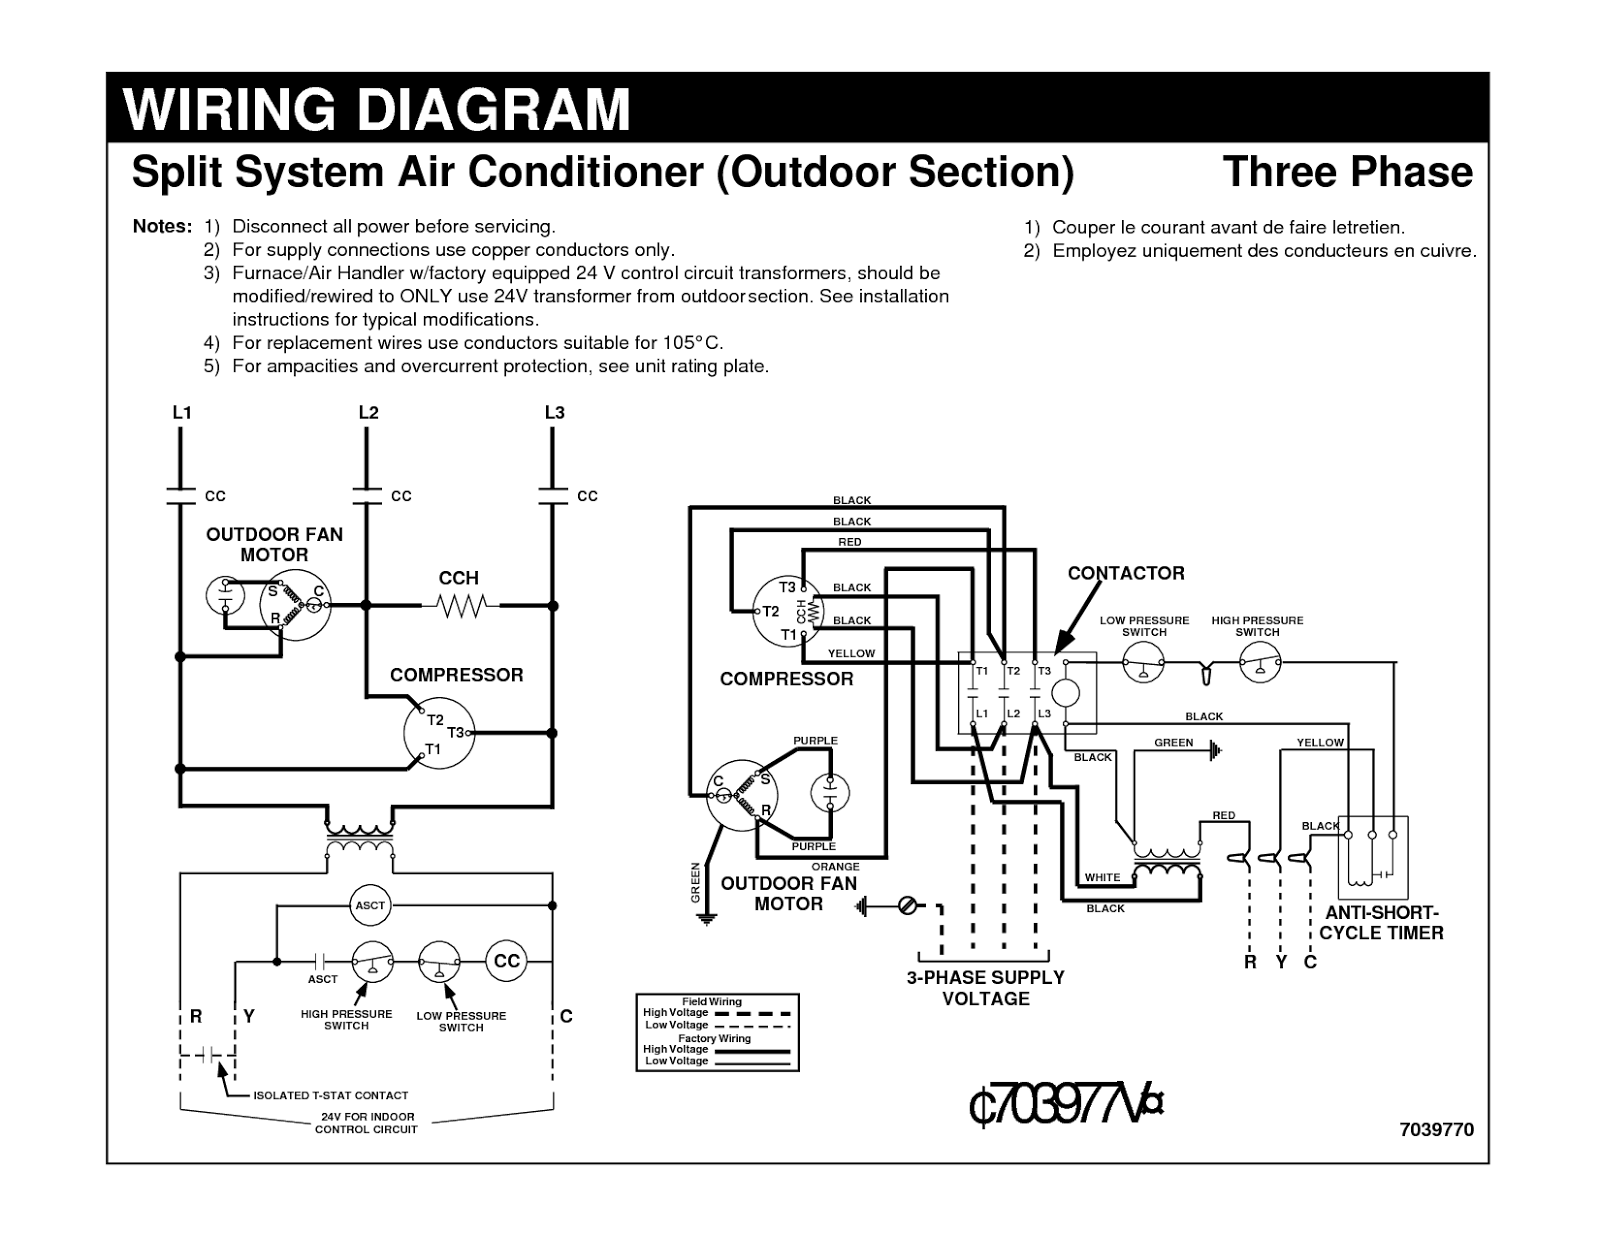 ac wiring diagram ac wiring diagram r32 gtr wiring diagrams rh parsplus co 2002 Lexus ES300 Engine Wiring Harness Lexus RX400h Wiring Diagrams